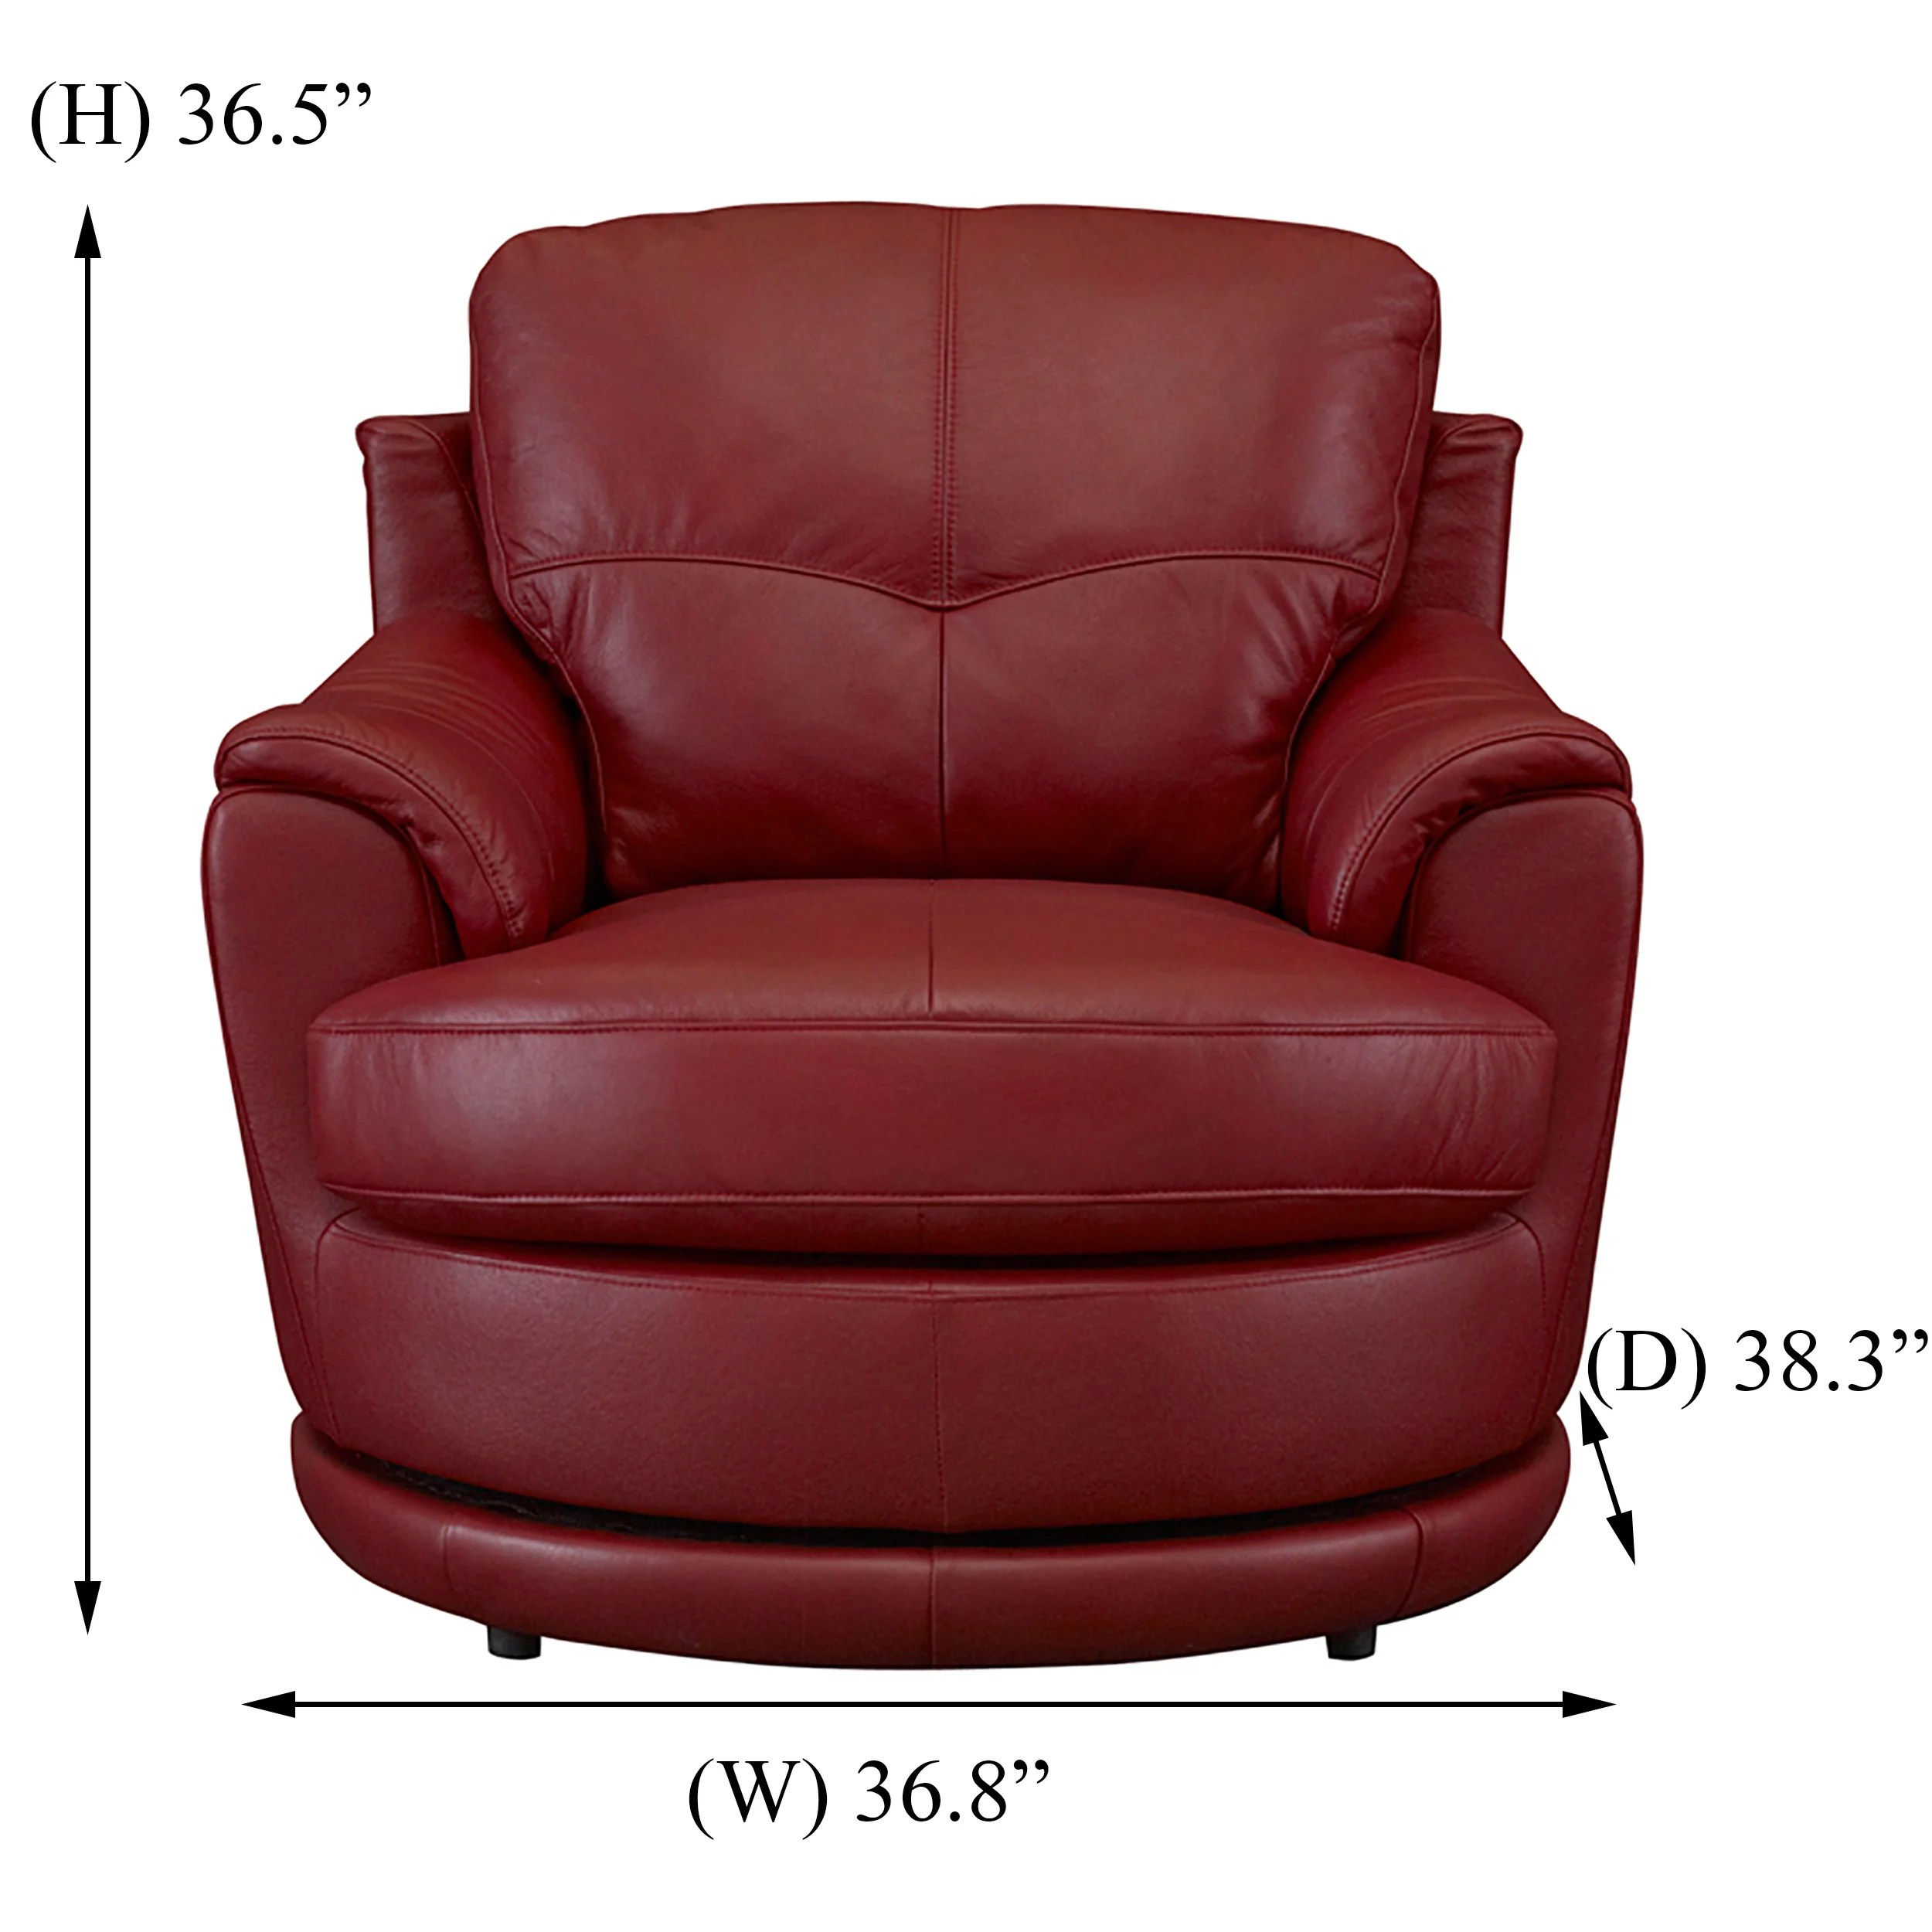 Red Leather Swivel Chair Somette Dorena Red Leather Swivel Chair